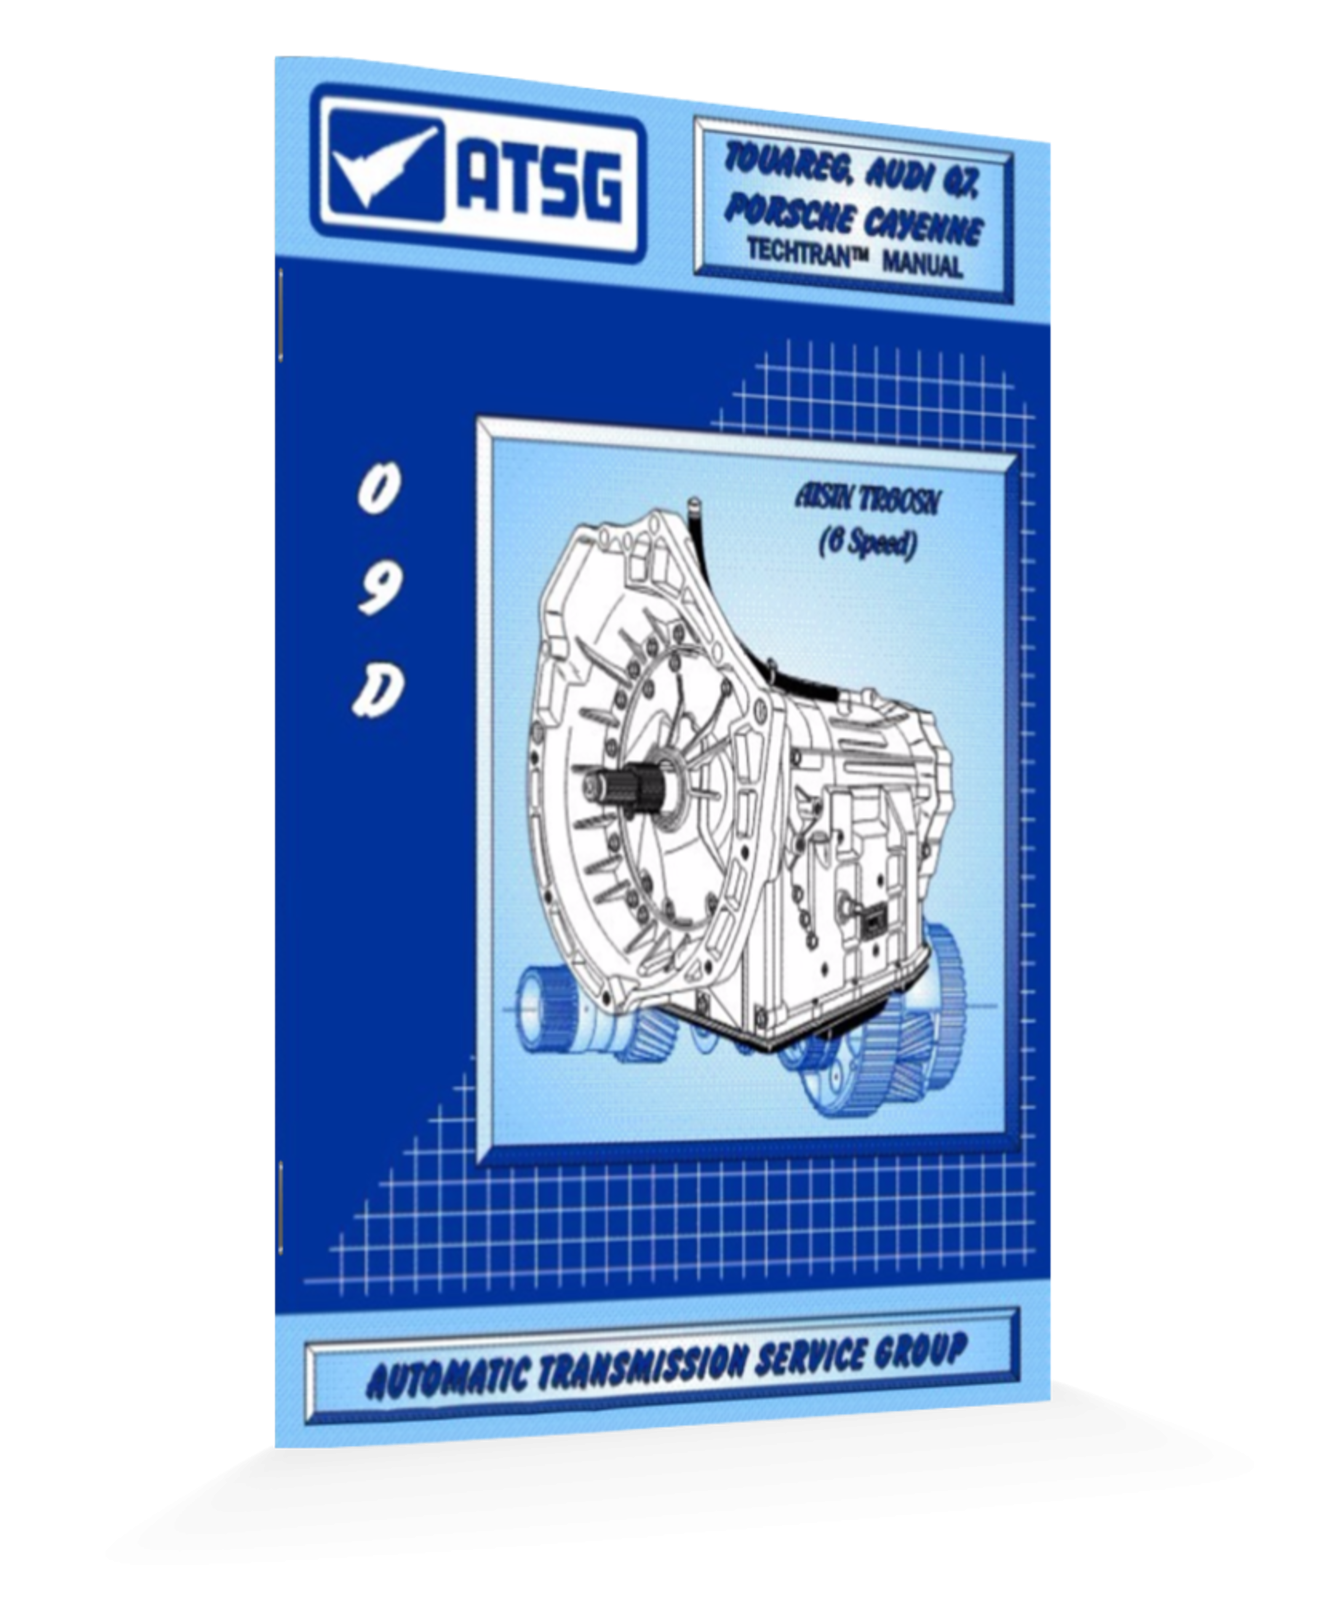 Voltswagon 09d Tr60n Atsg Transmission Manual Handbook